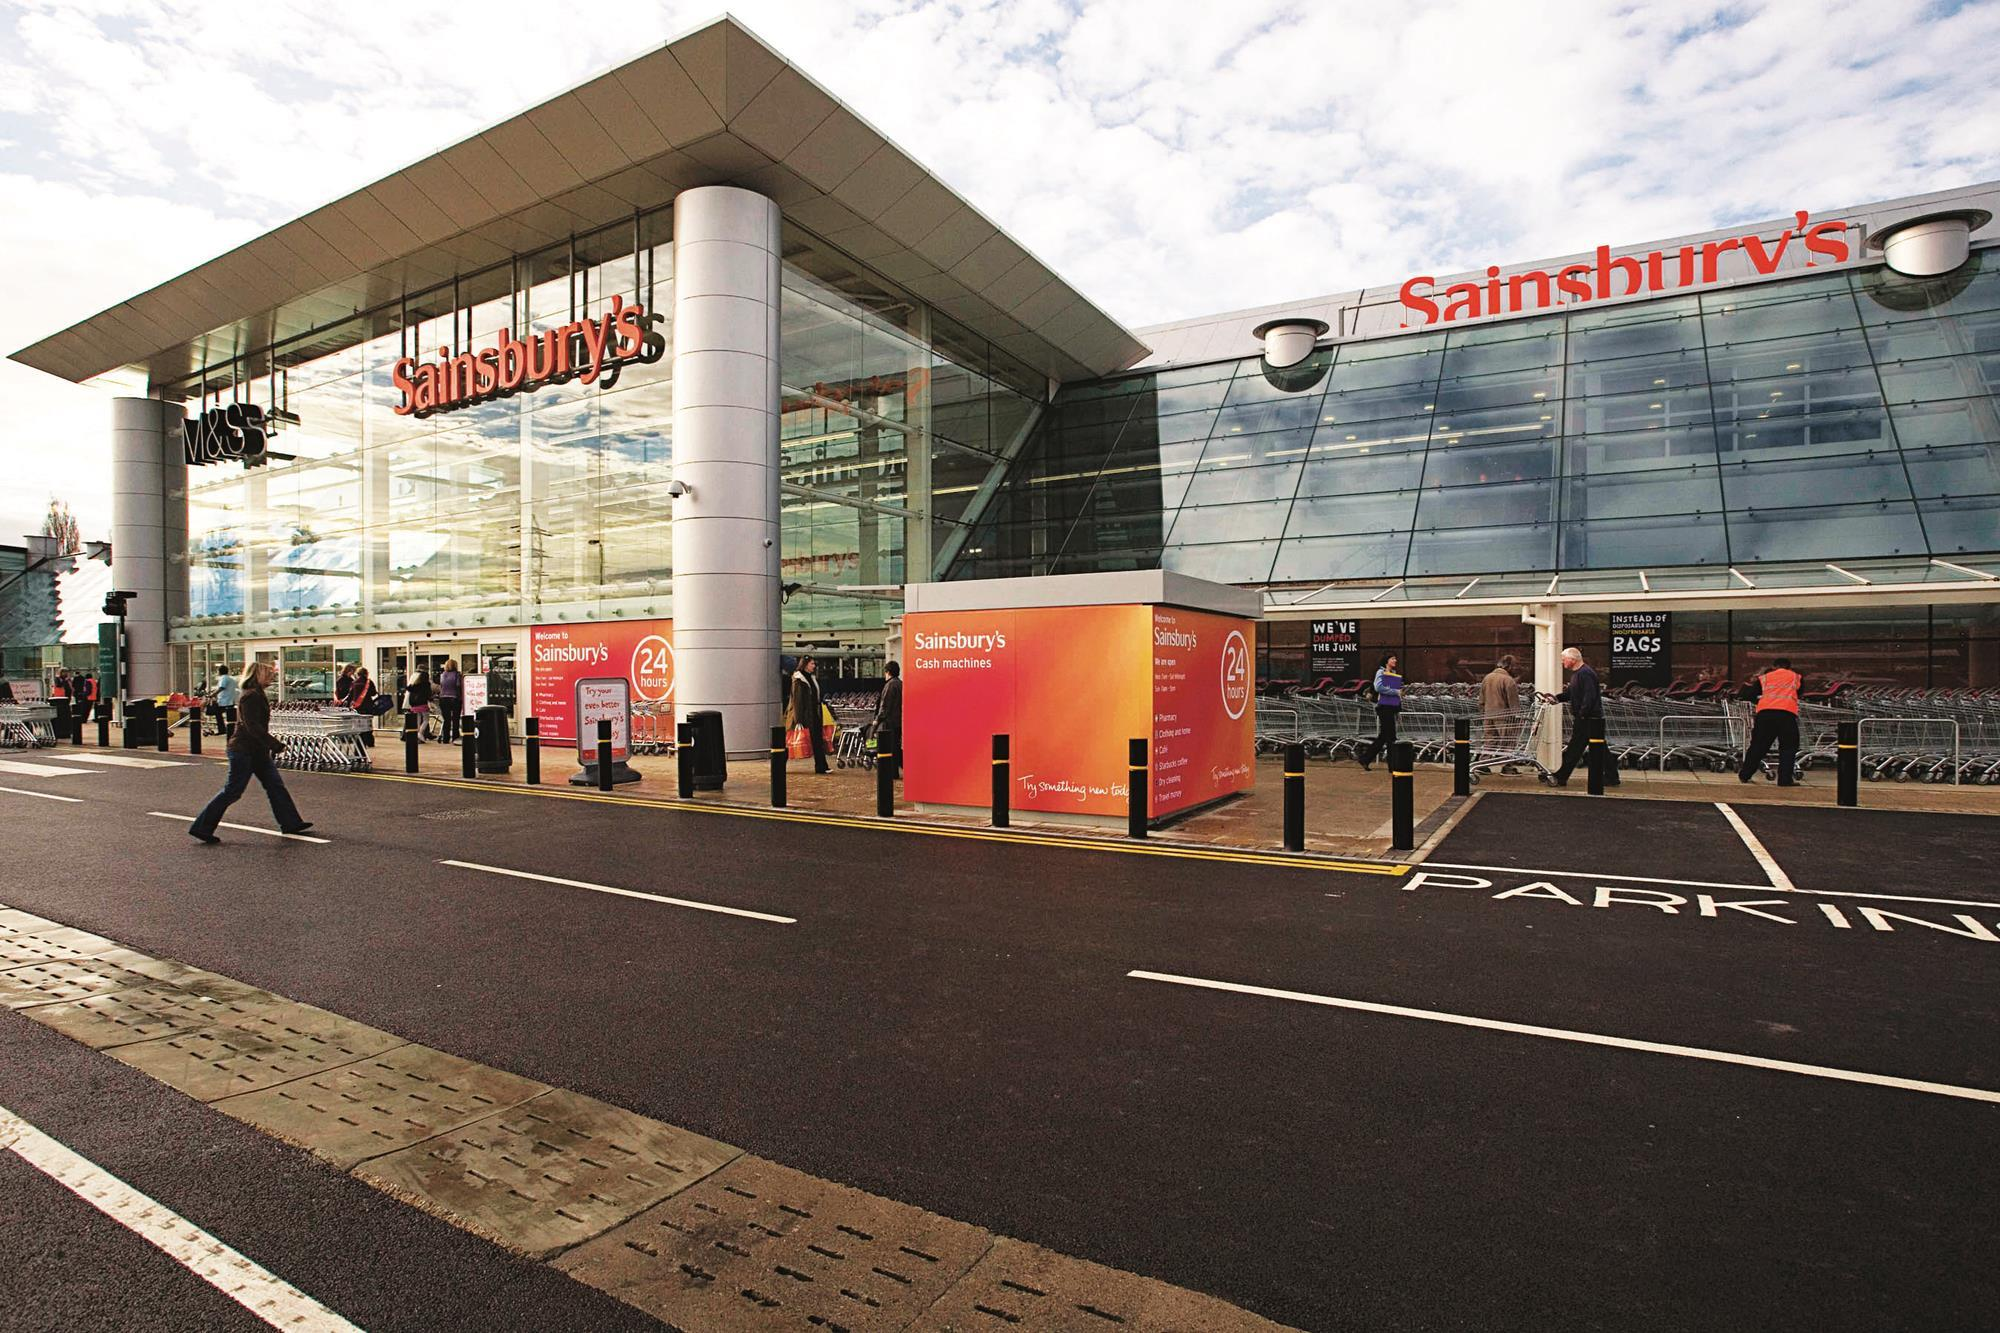 sainsburys company analysis Retail analysis is your window on  improve capability and grow your company supply chain analysis gives you the  sainsbury's rolls out 1 hour delivery to 1.